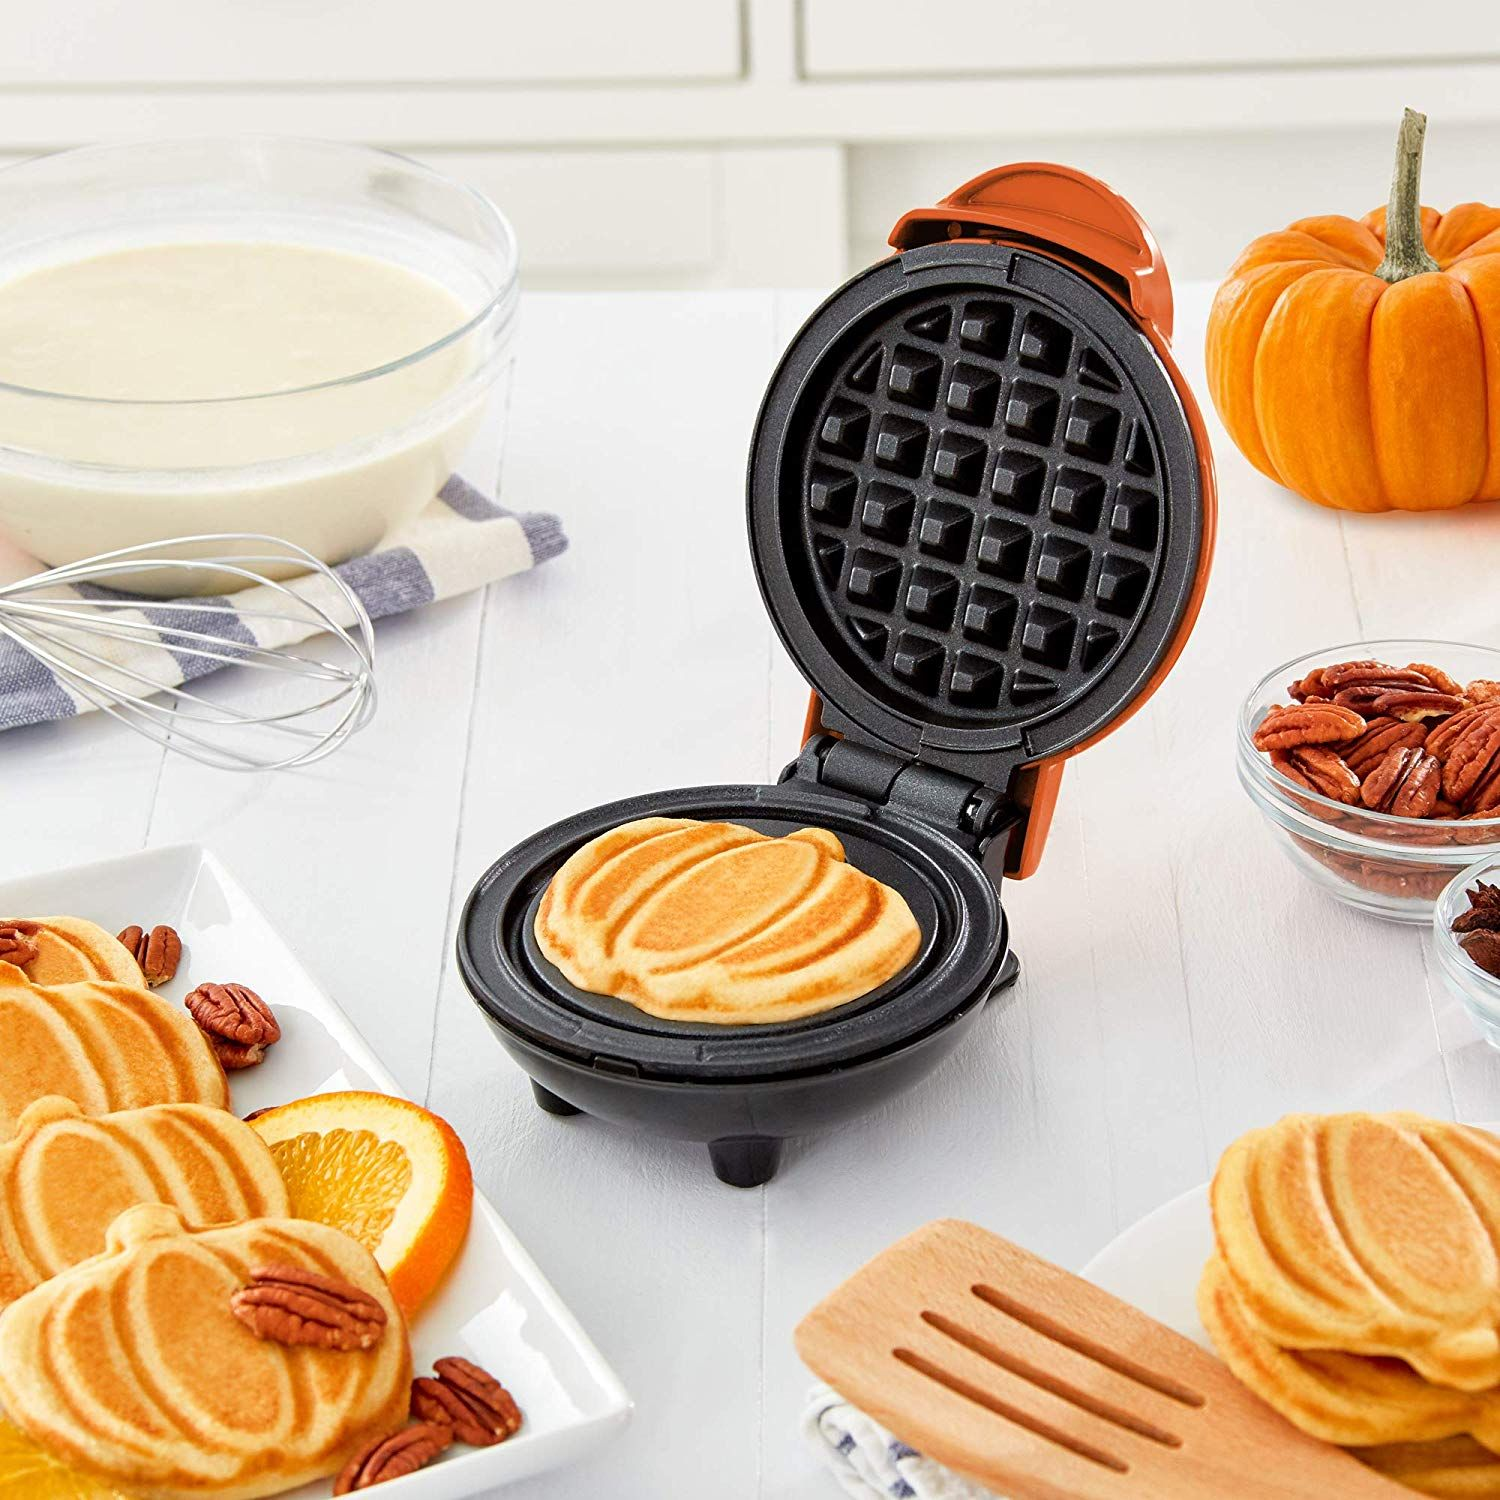 Heart Waffle Maker- Non-Stick Waffle Griddle Iron- 5 Heart-Shaped Waffles Maker 1200W for Waffles and Snacks Or Any Breakfast Lunch